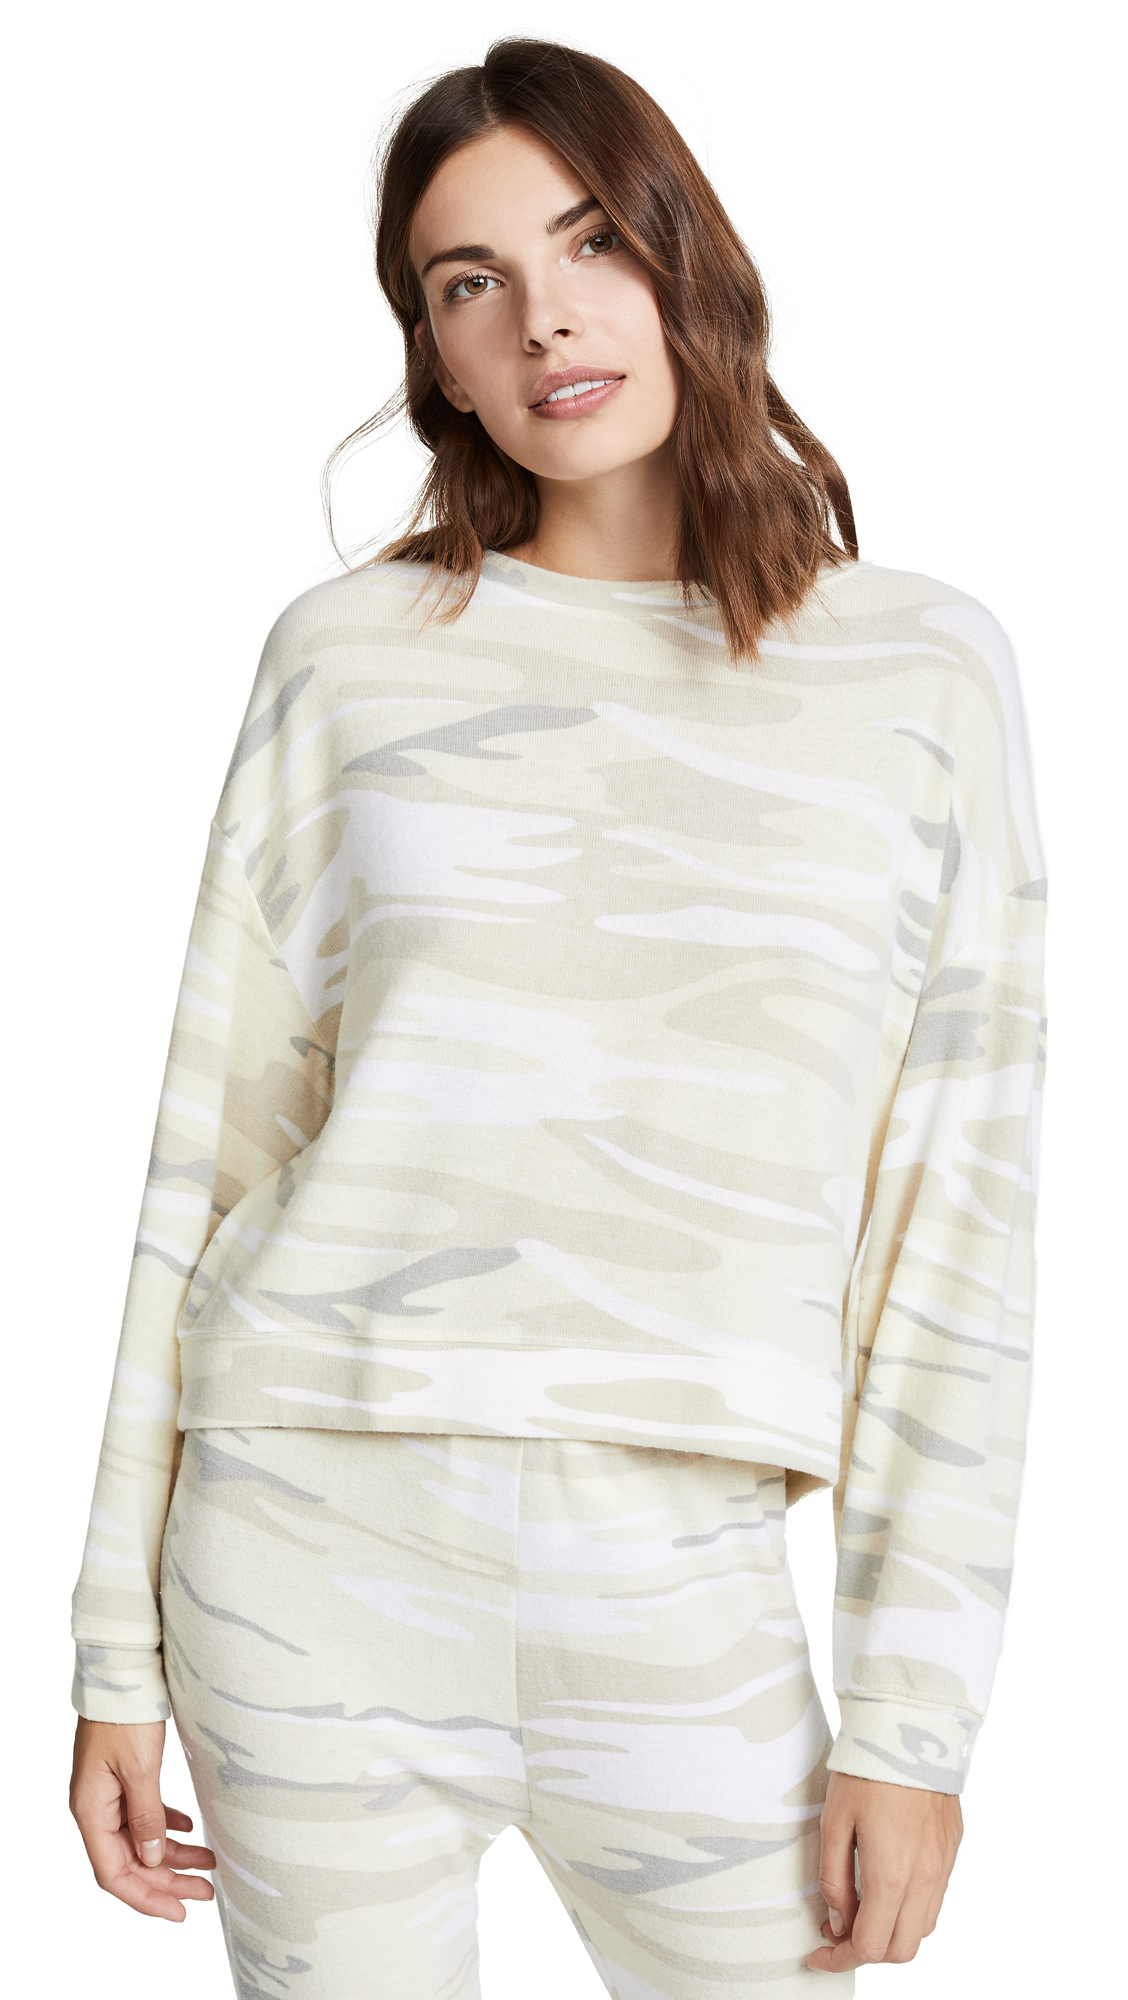 Z SUPPLY Lux Camo Pullover in Camoflage